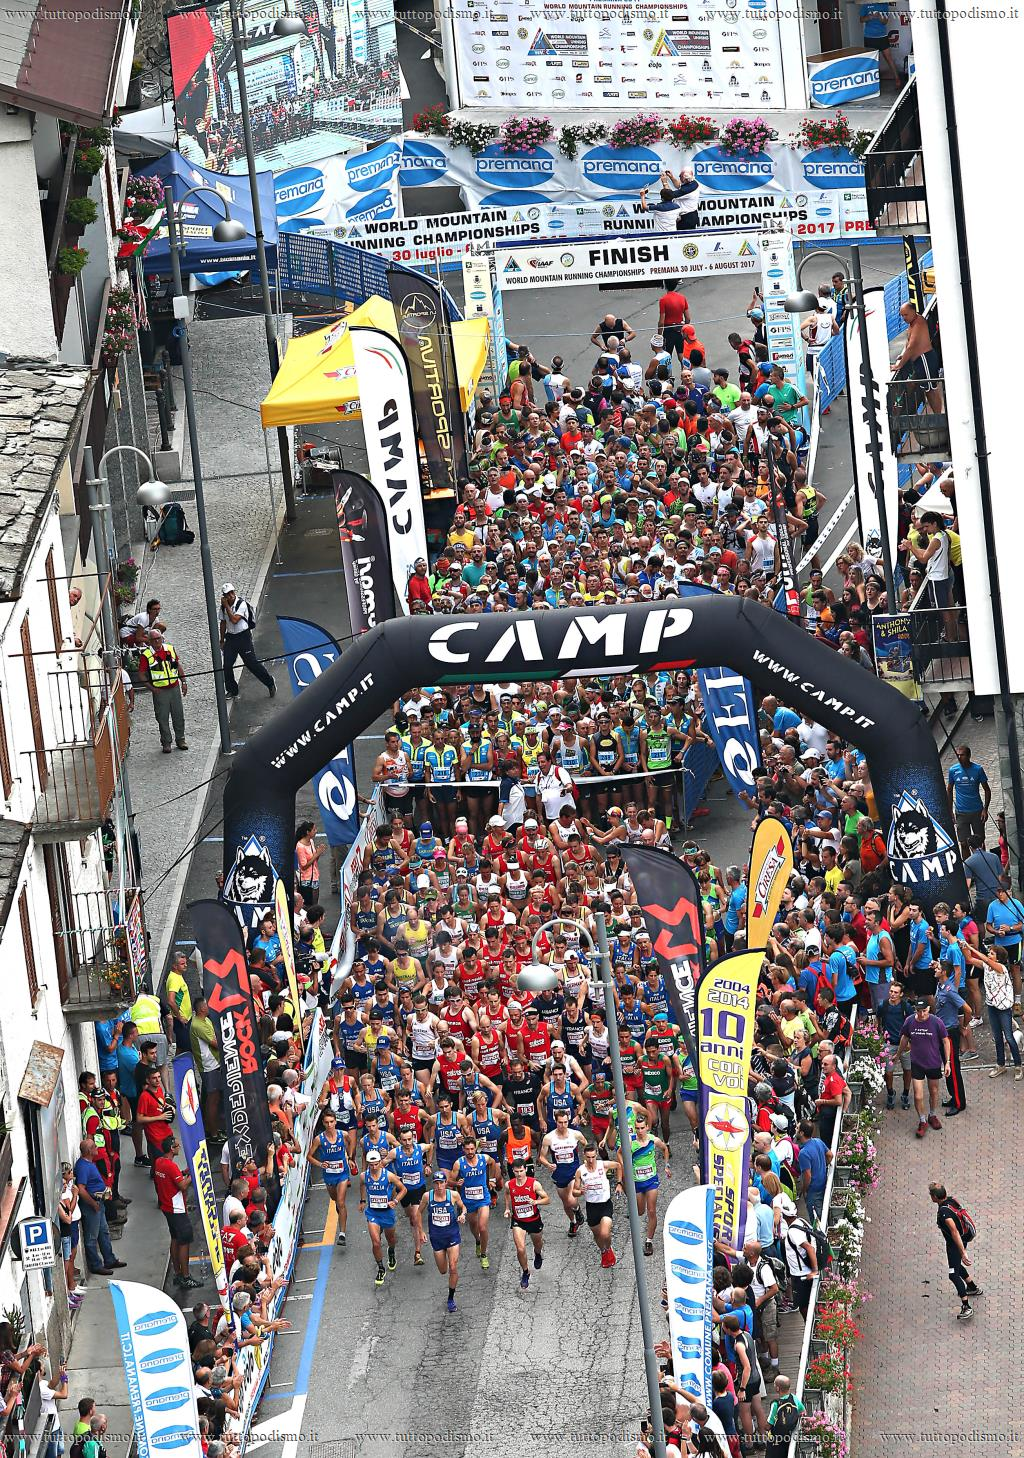 14o_World_Mountain_Running_Championship_long_distance - partenza.jpg